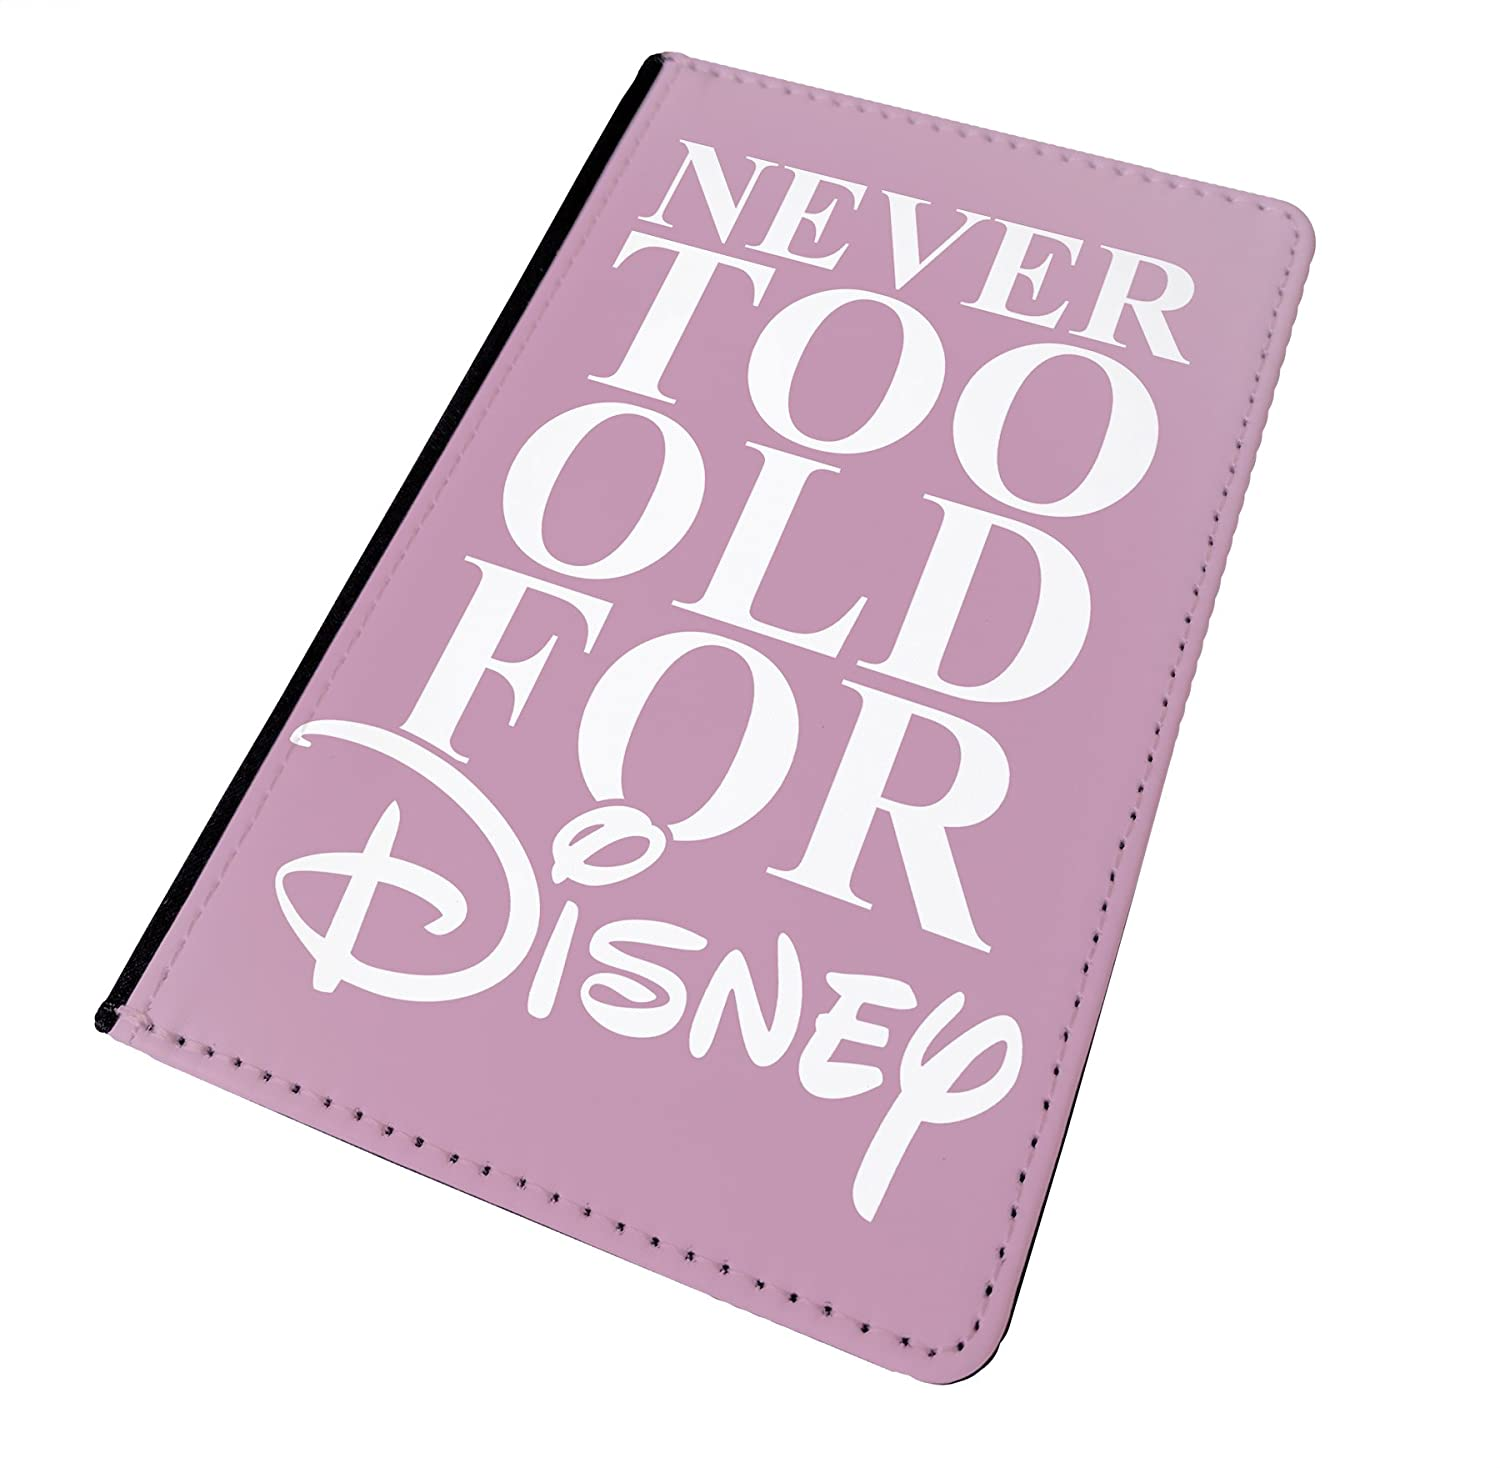 WTF | Never Too Old For Disney - Pink | Printed Art Faux Leather Passport Cover/Luggage Tag (Holder/Luggage Tag Combo)